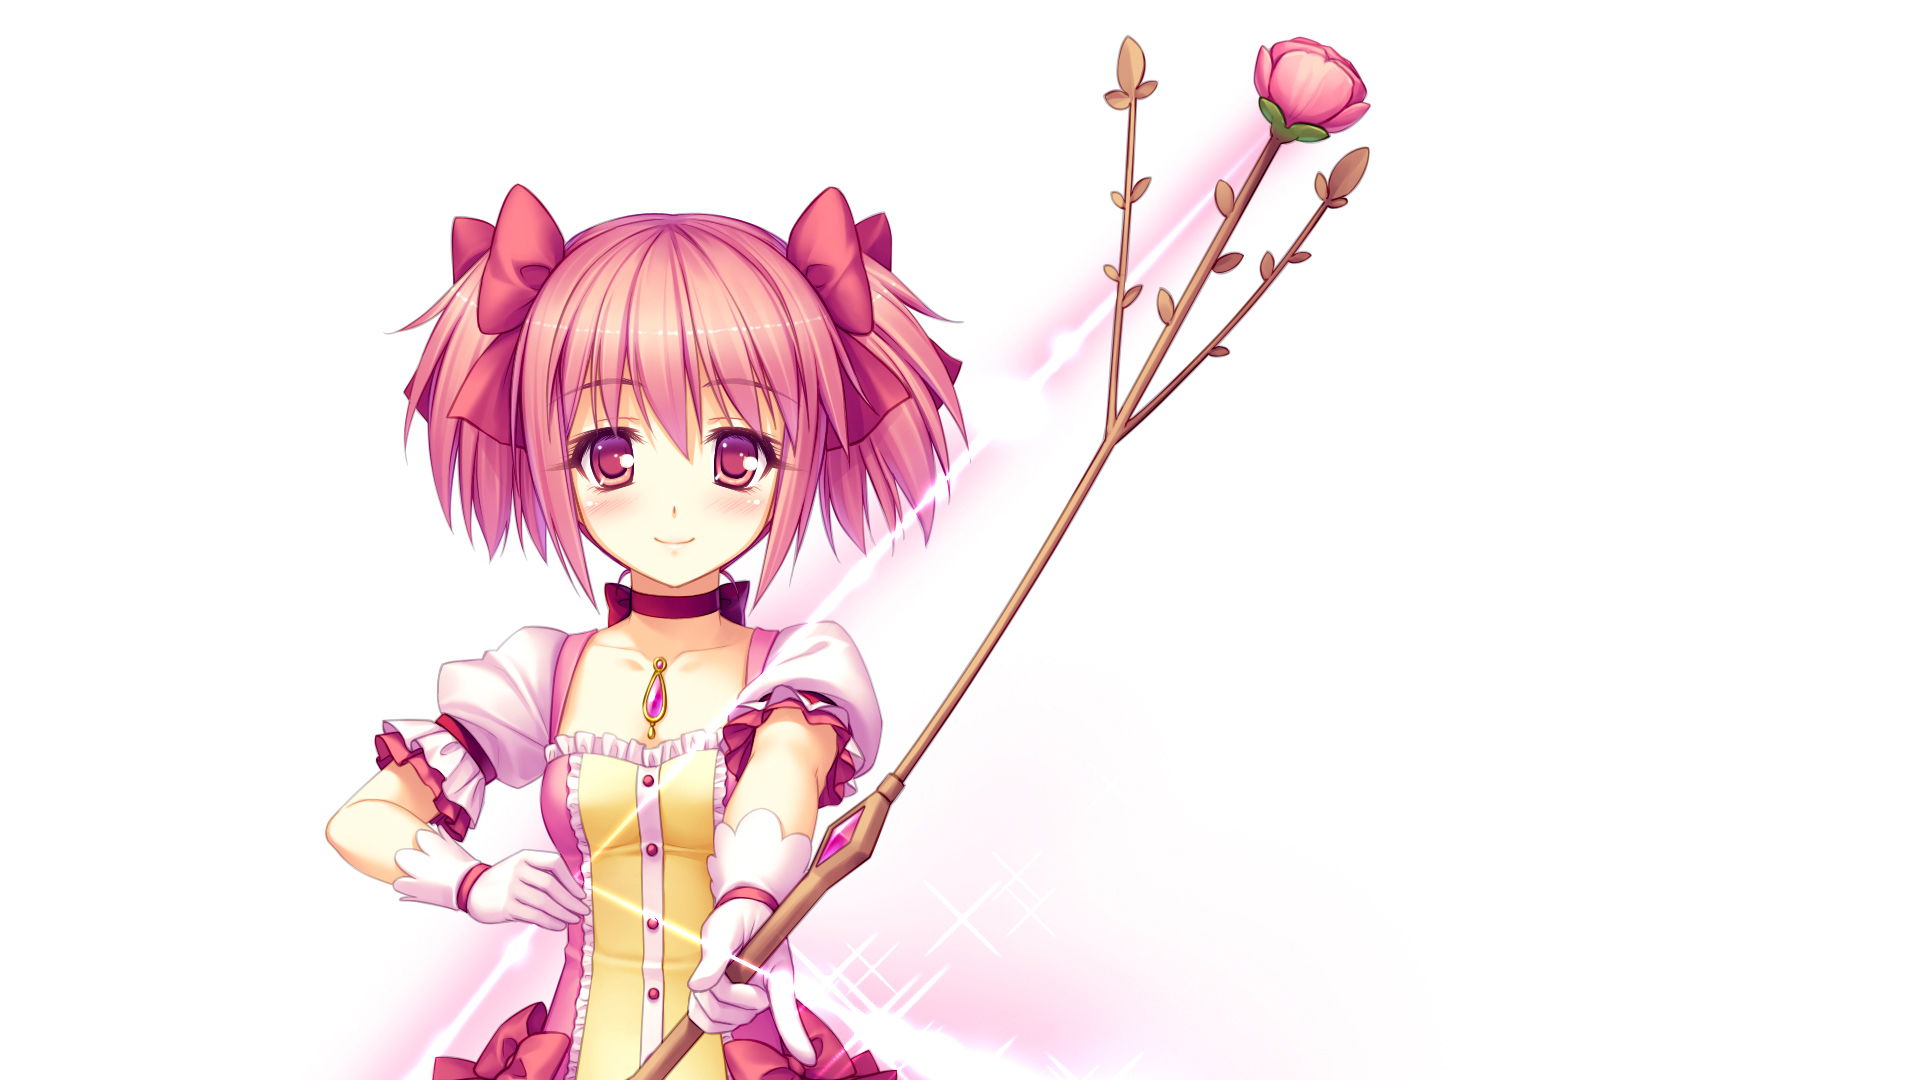 Weapons pink hair short hair twintails Mahou Shoujo Madoka ...